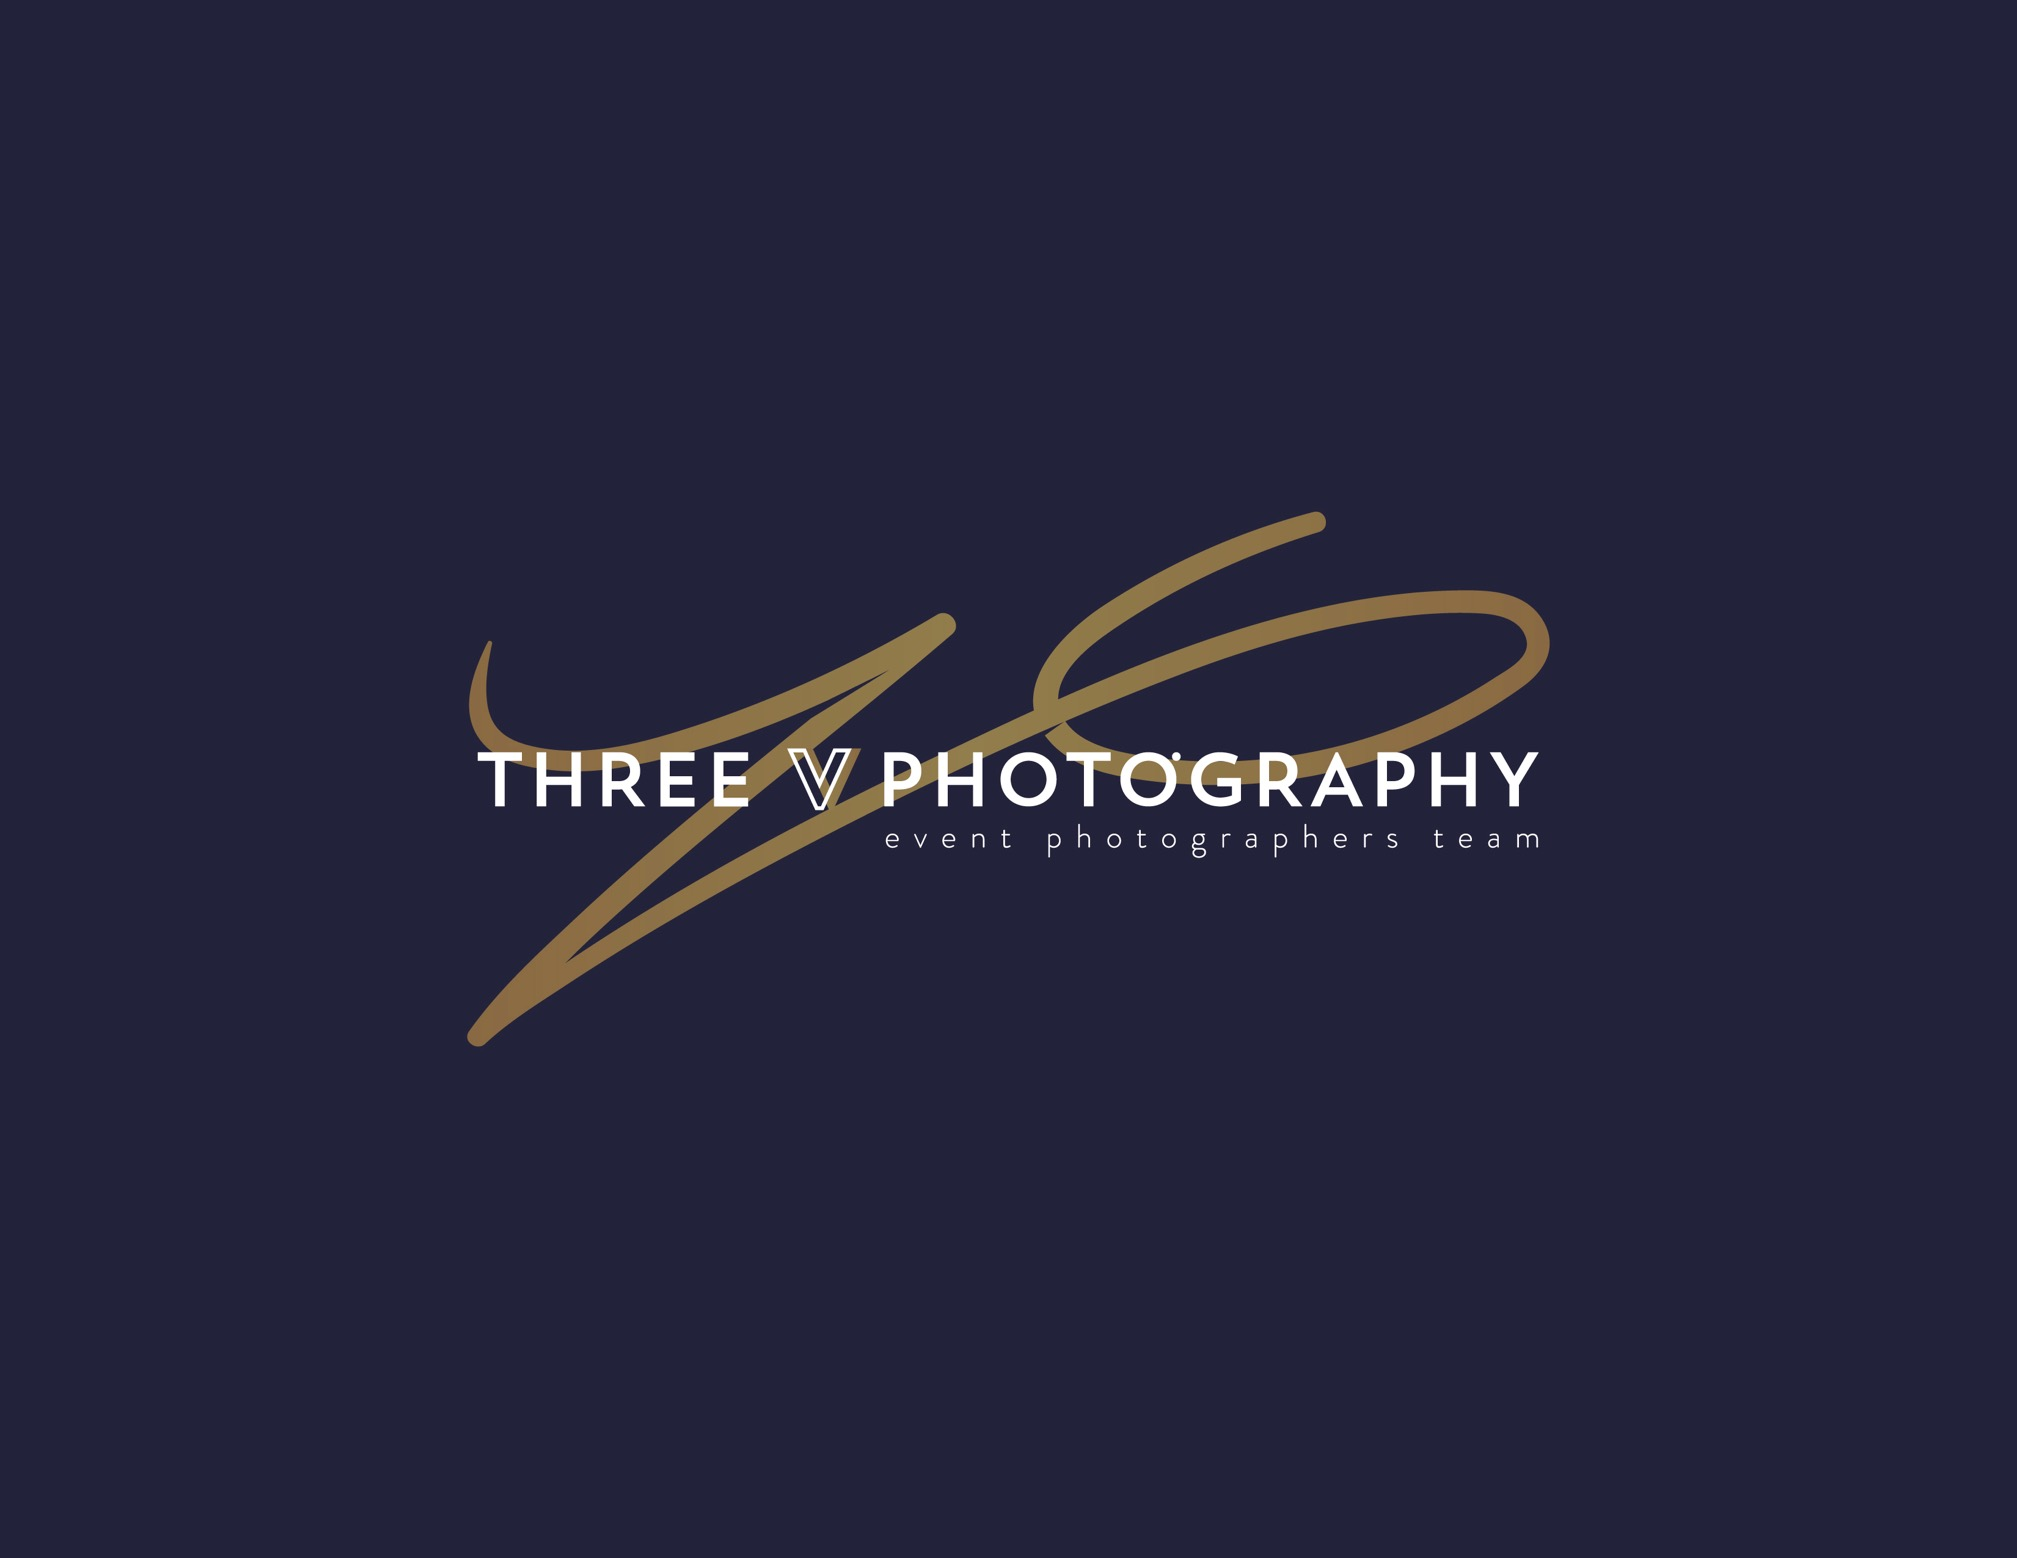 Three V Photography